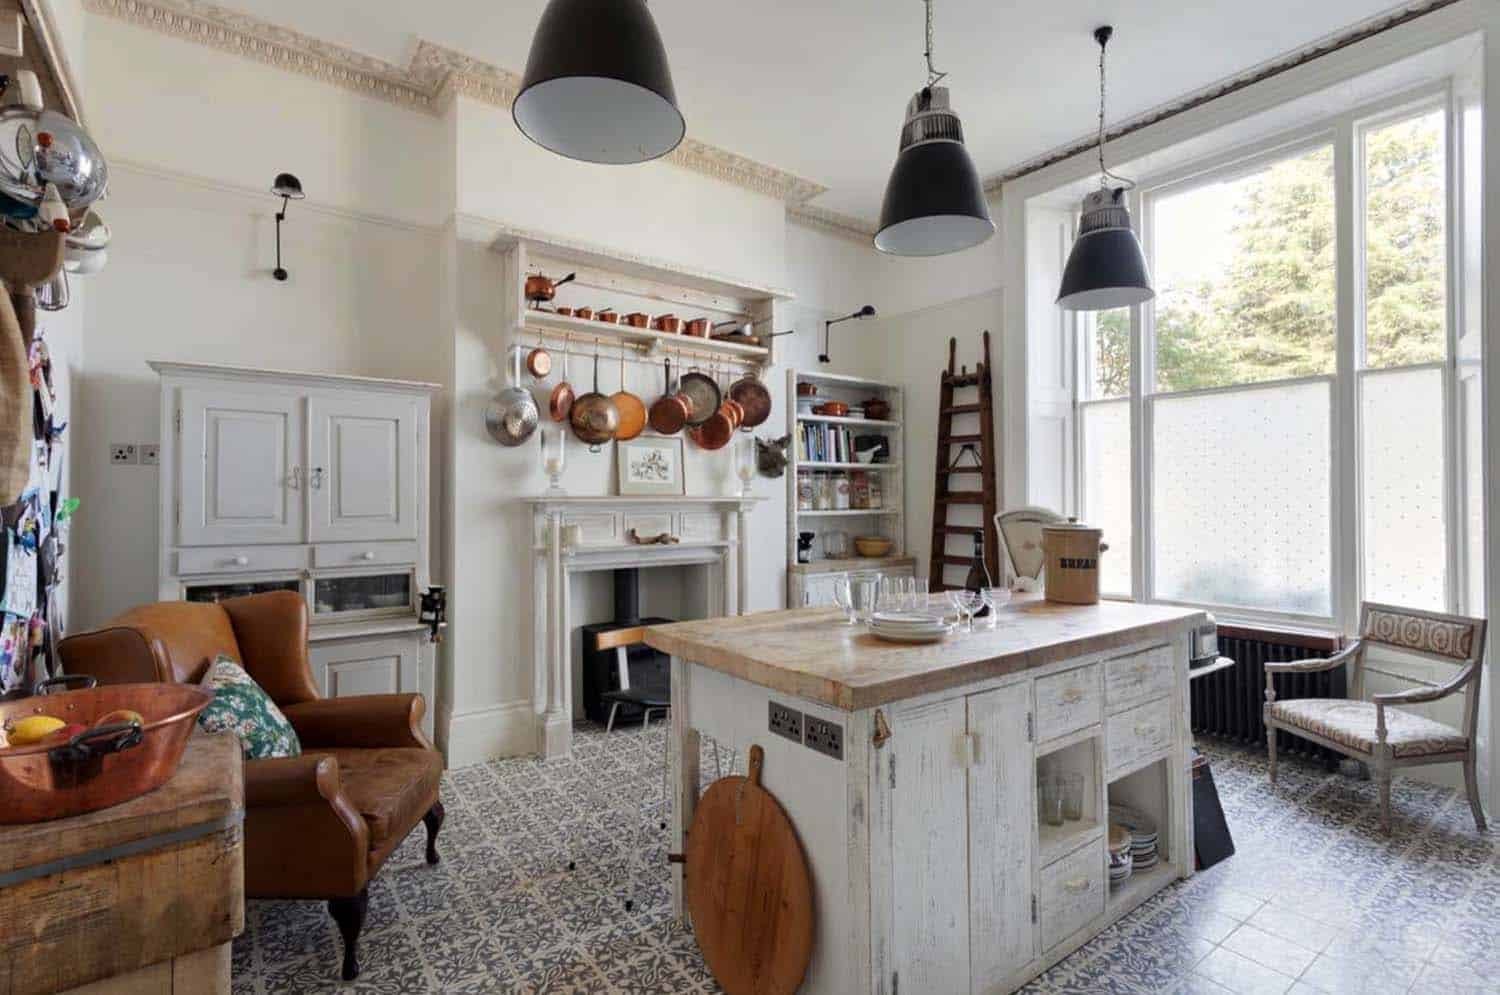 Amazing Country Chic Kitchens-20-1 Kindesign